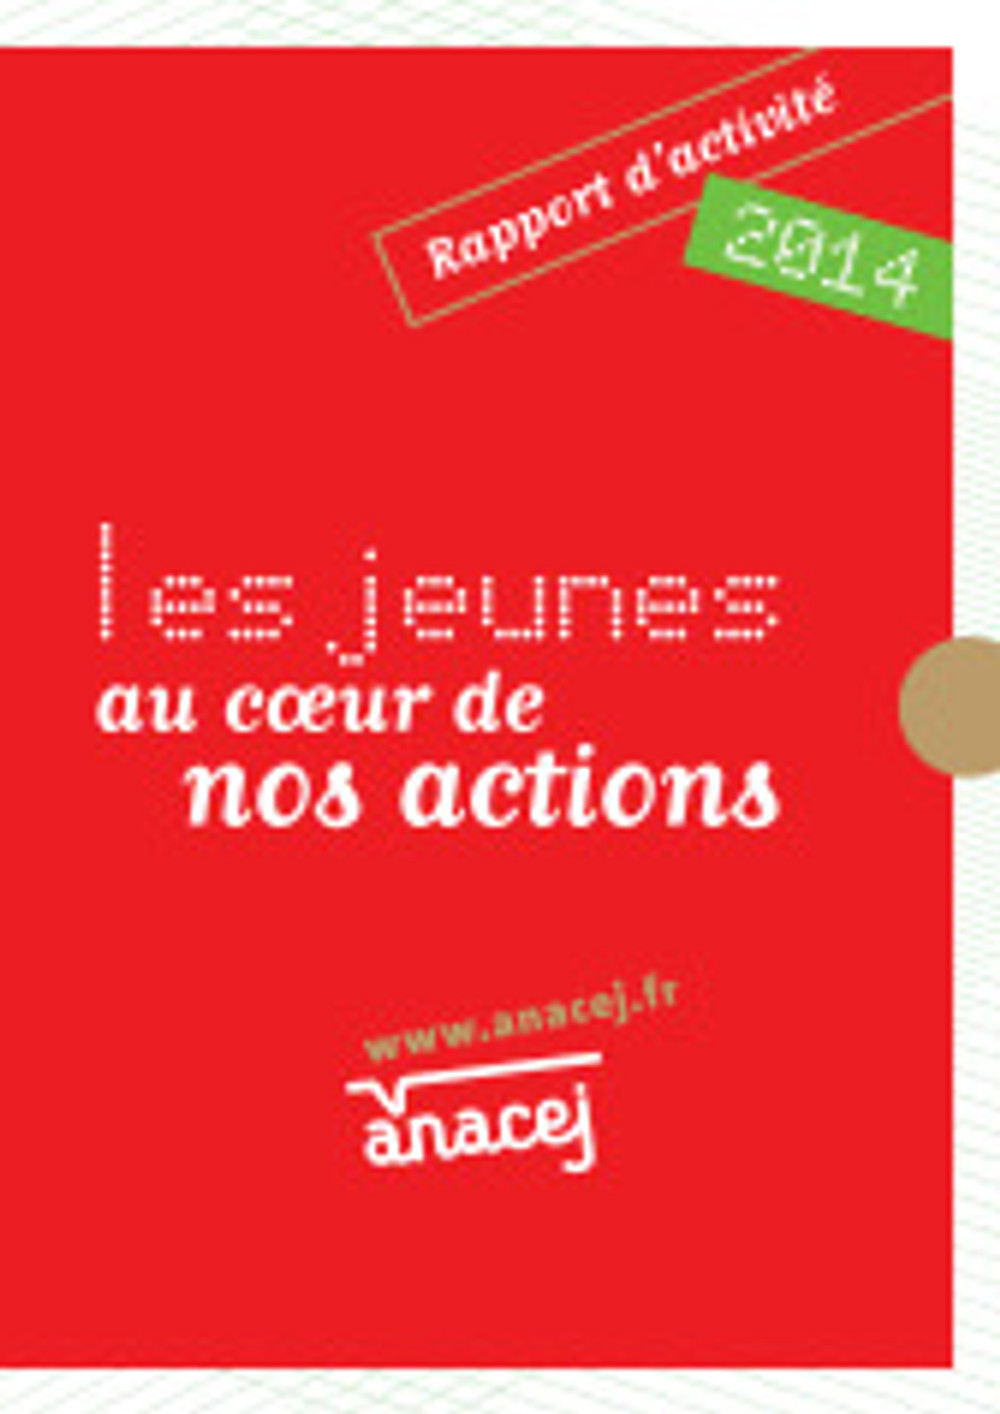 rapport_acti_2014©anacej_Page_01